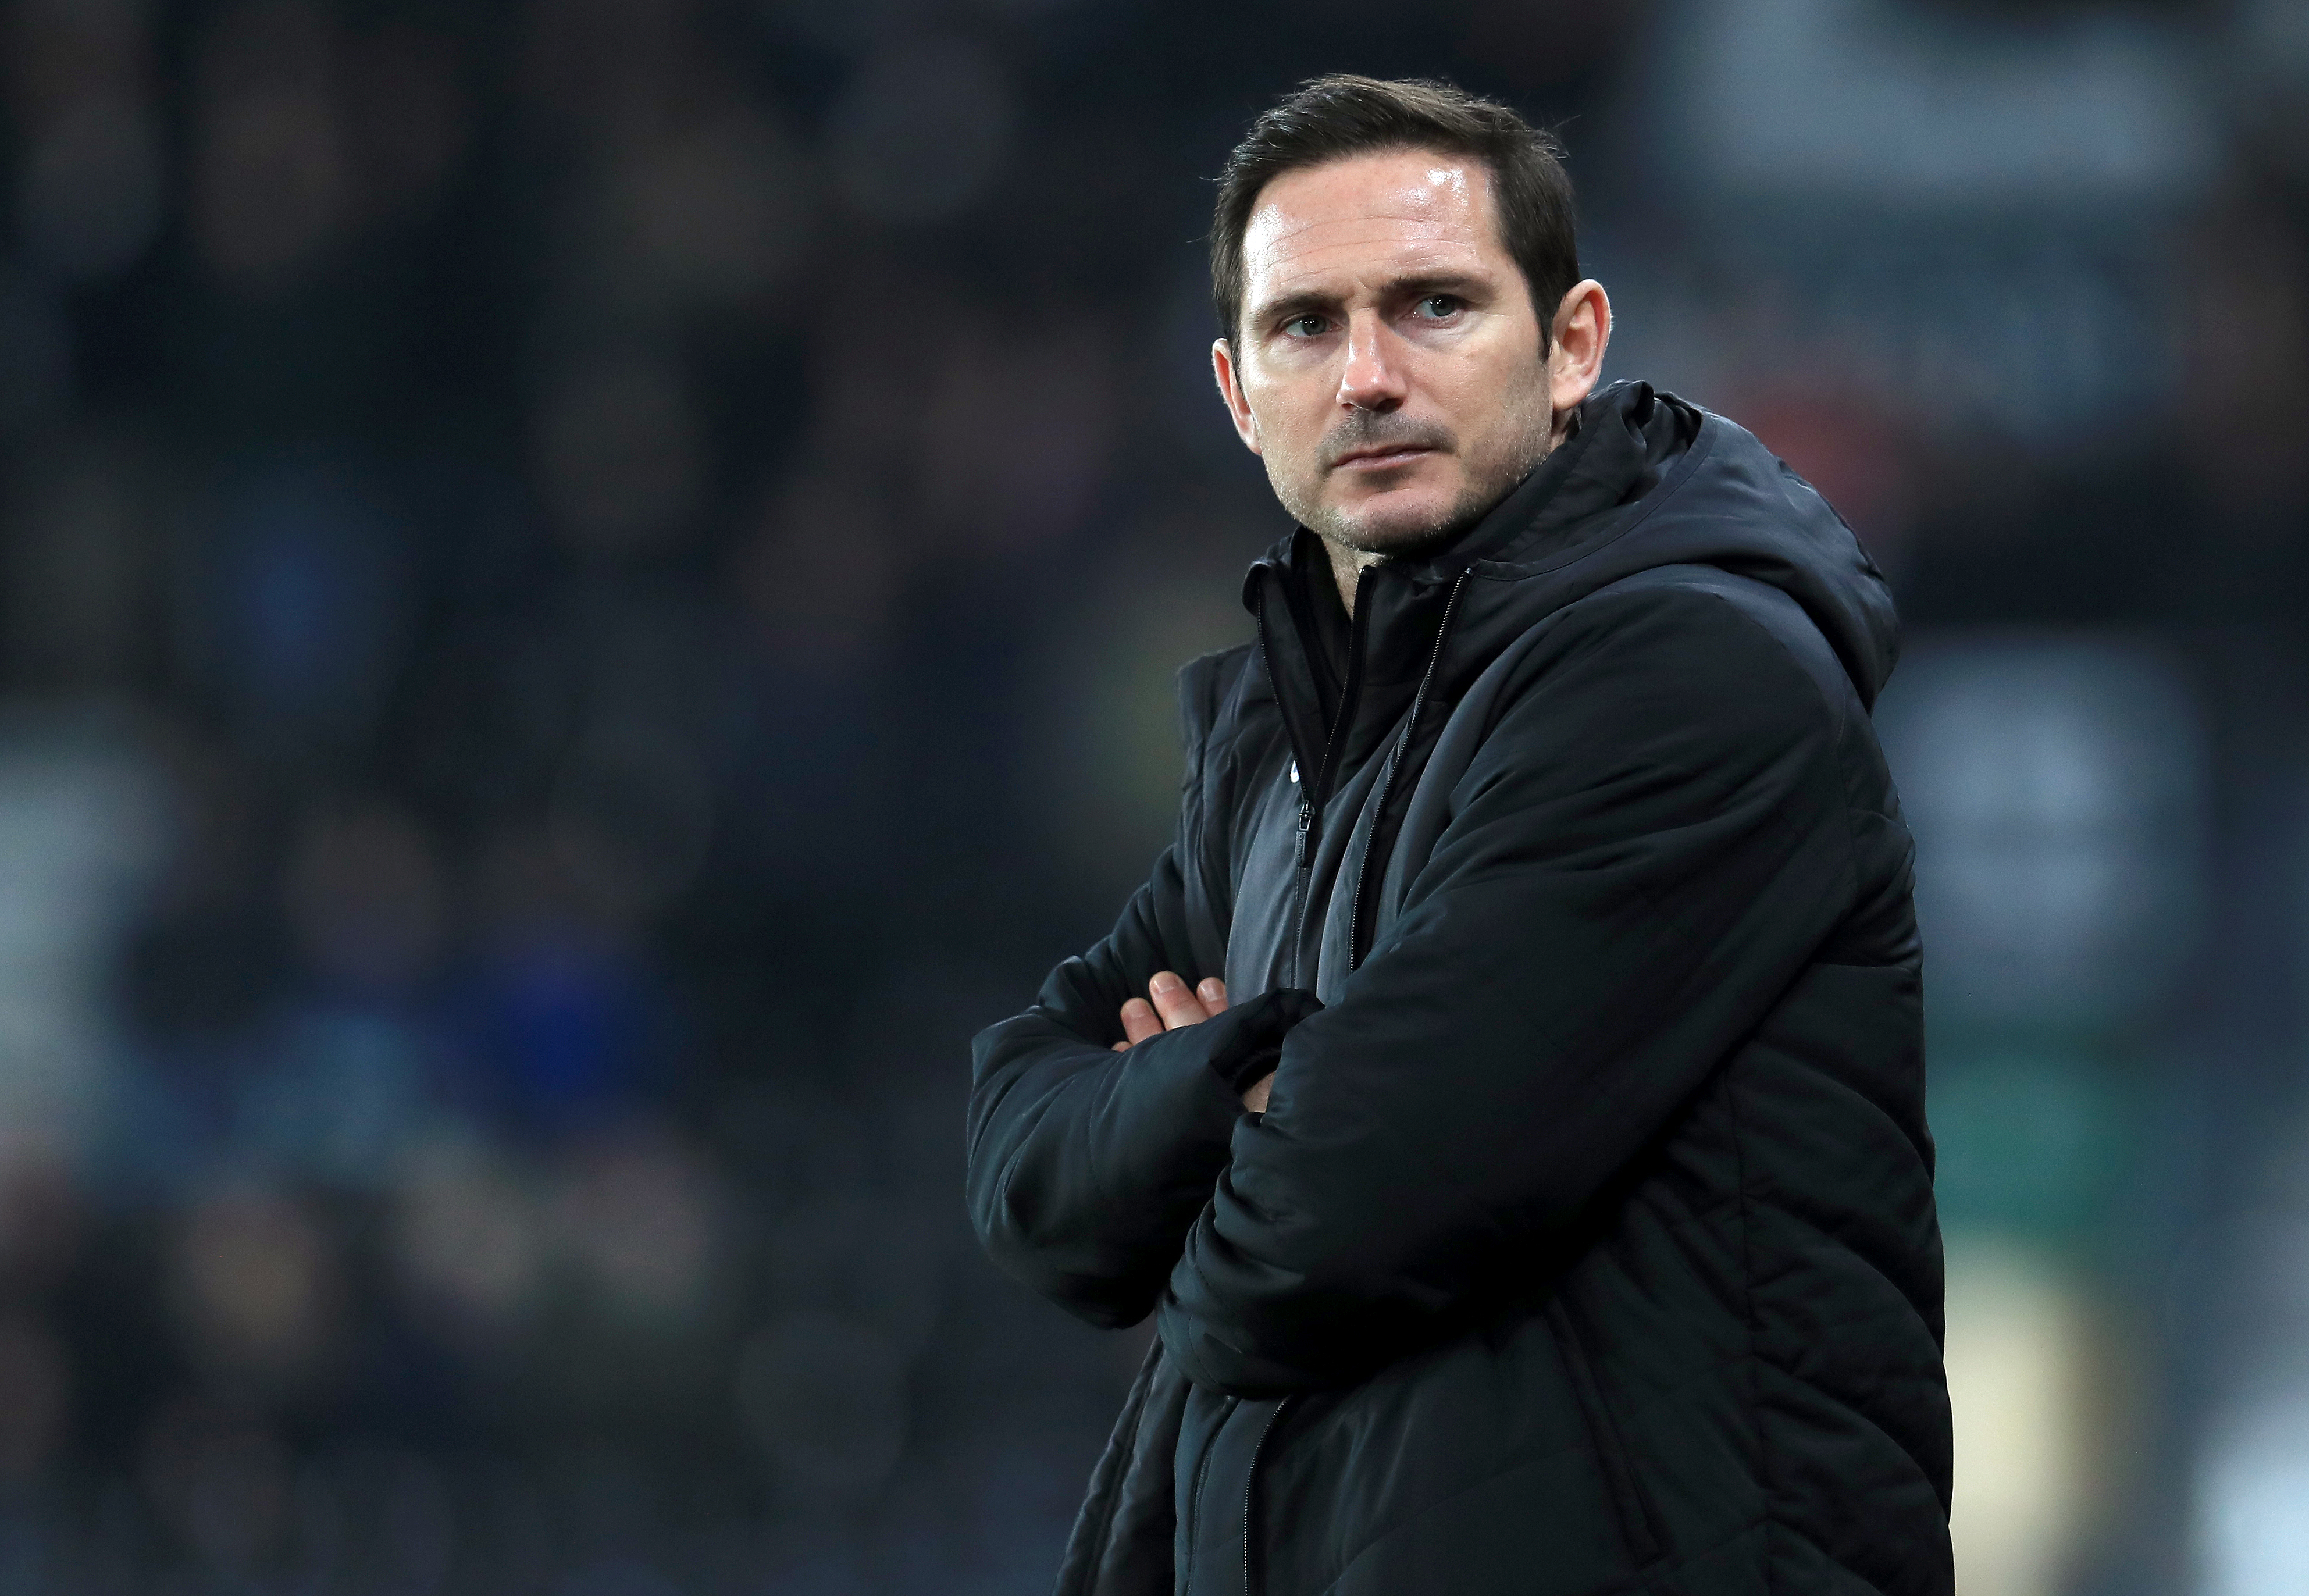 Lampard wouldn't have been happy to cancel training. Image: PA Images